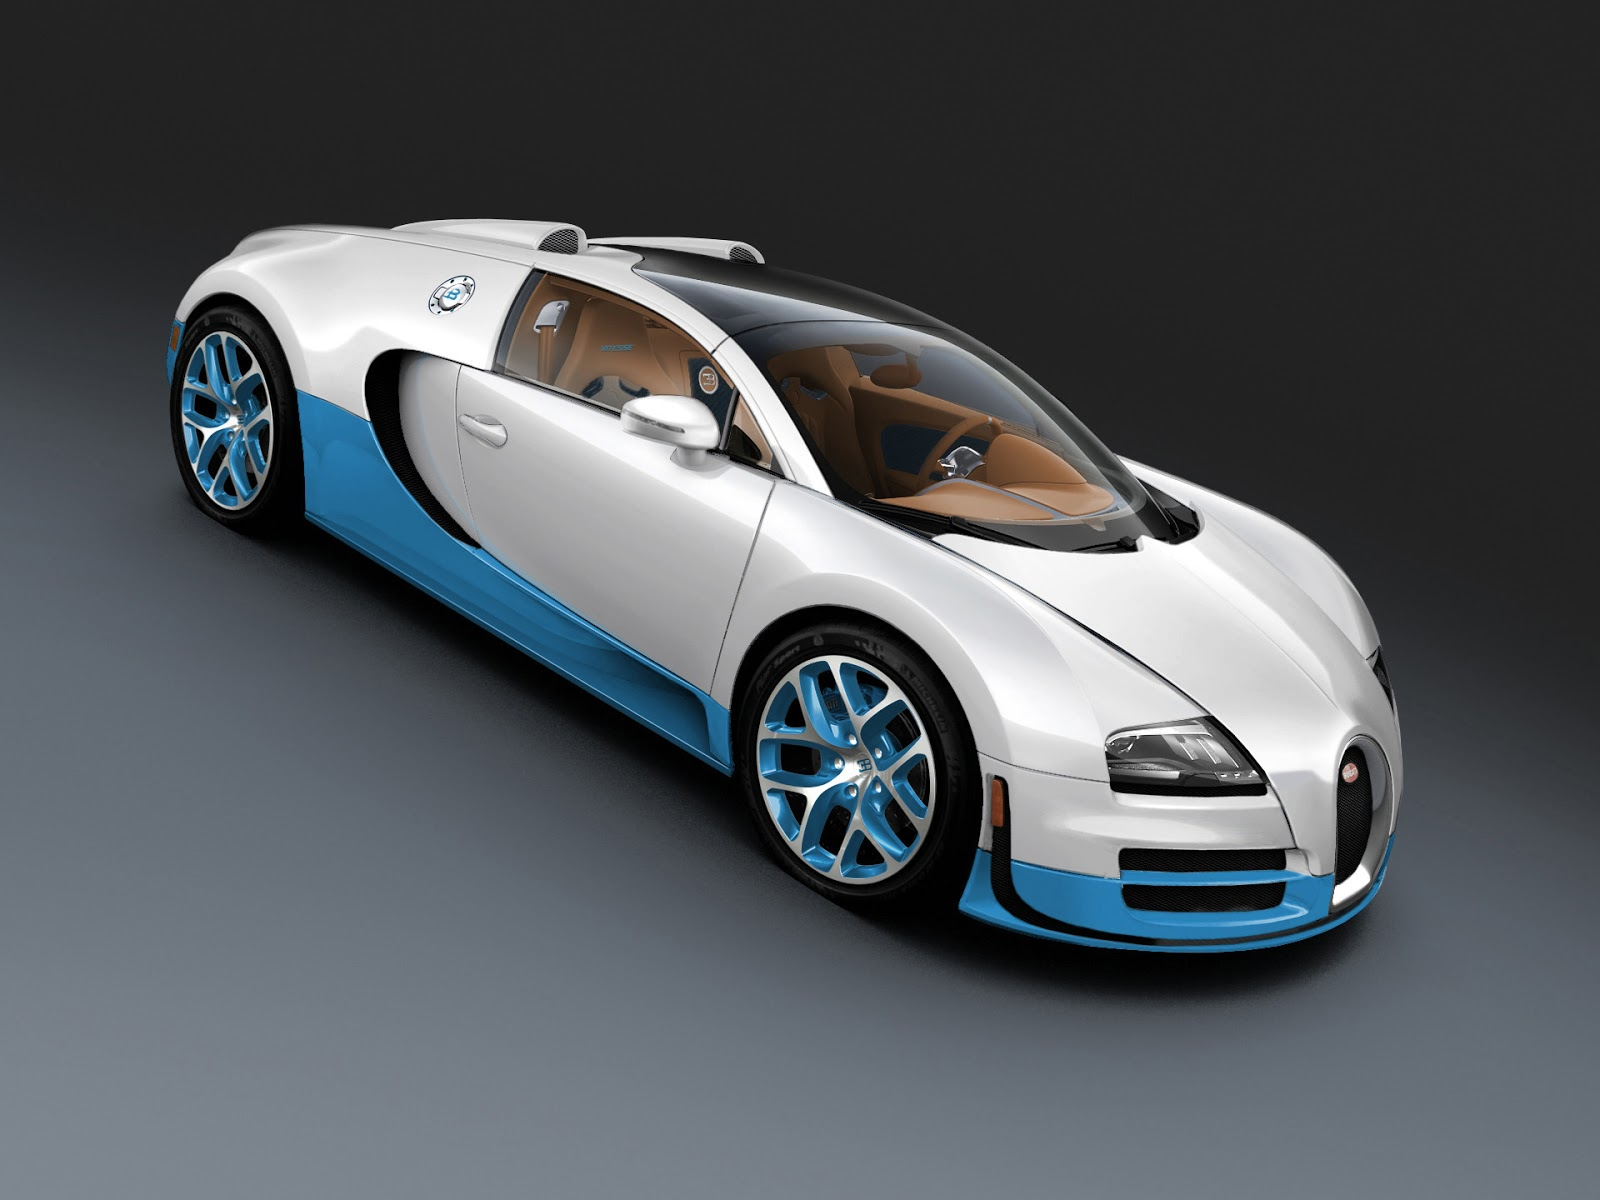 2012 bugatti veyron grand sport vitesse special edition auto cars. Cars Review. Best American Auto & Cars Review